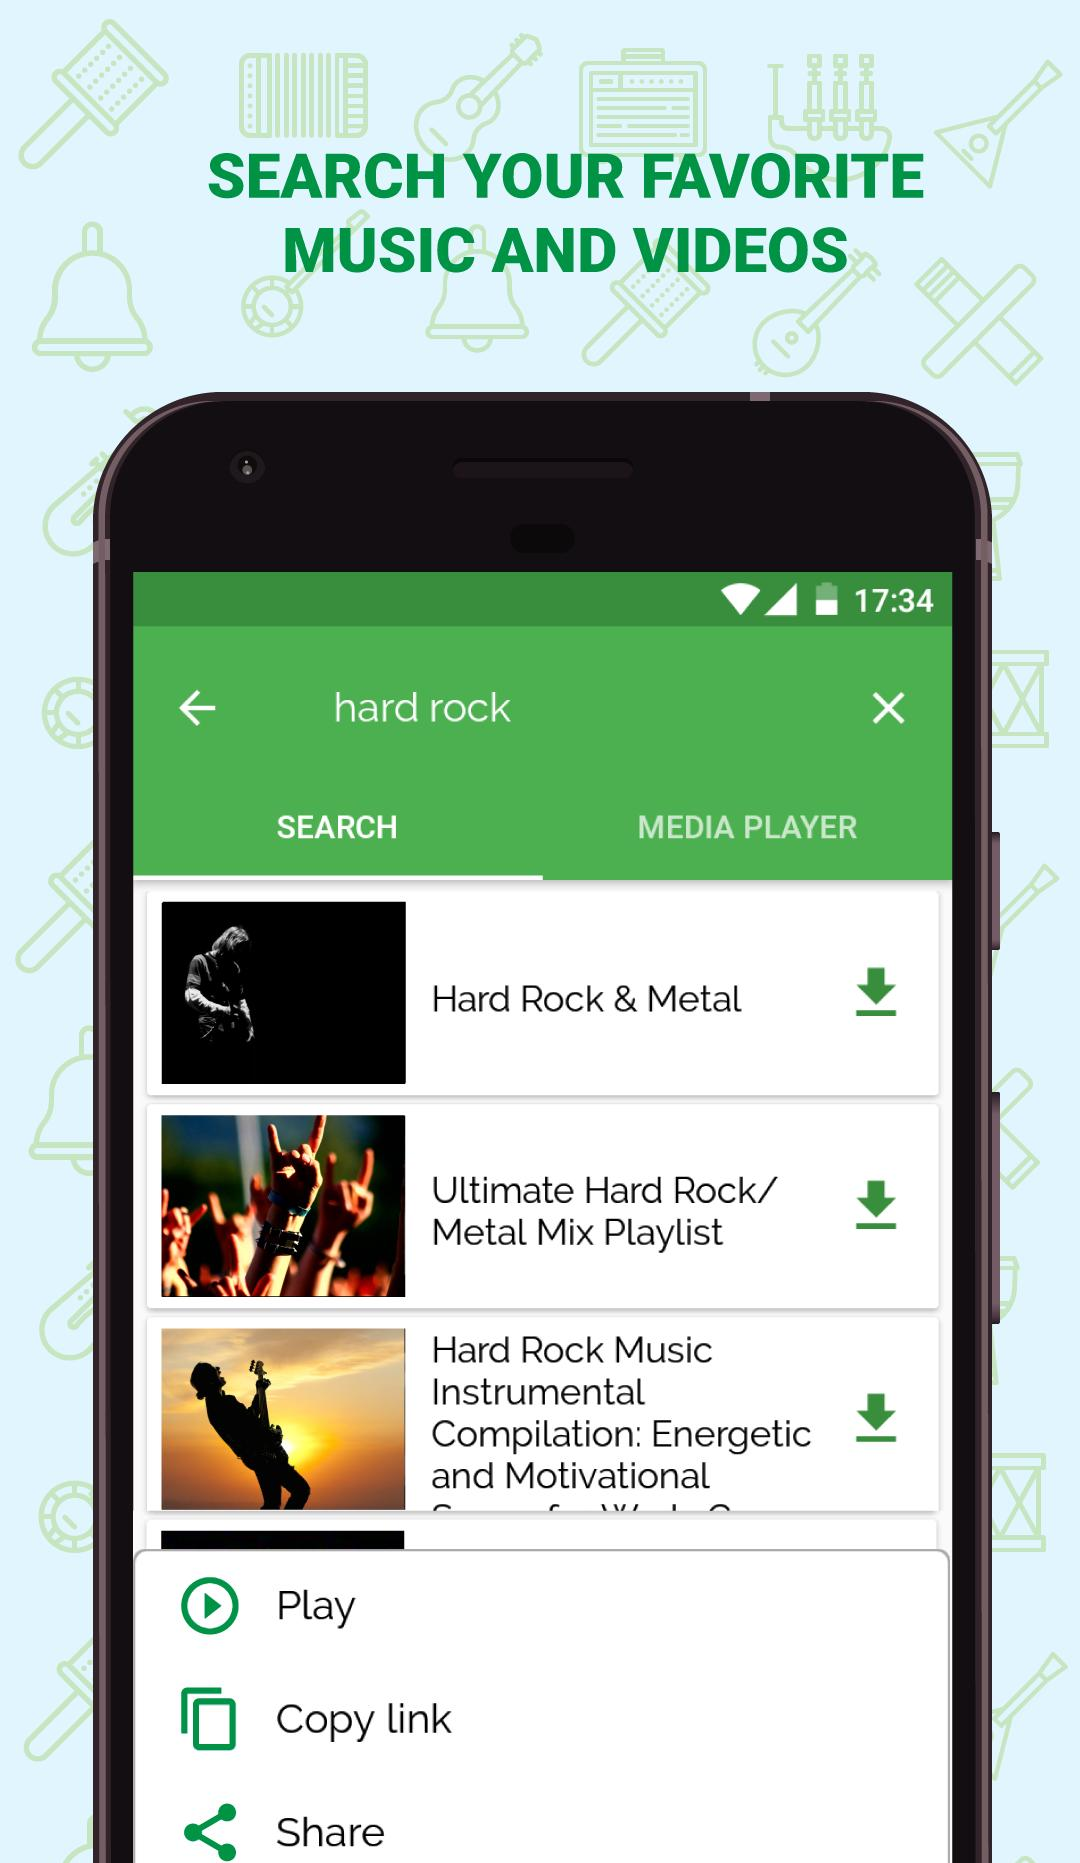 VideoMp3 - find free music mp3 for Android - APK Download